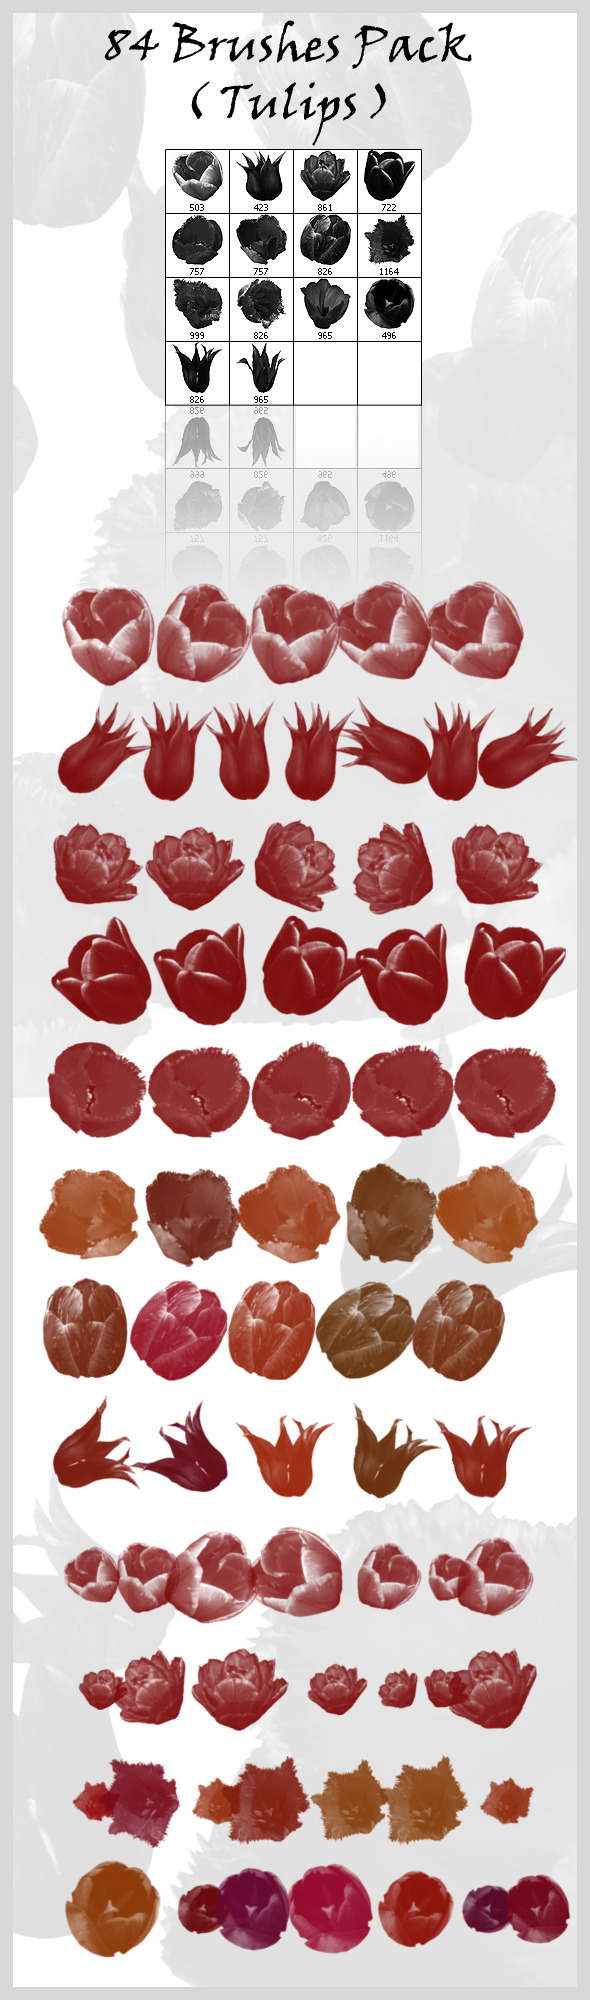 84 Brushes Pack ( Tulips ) - Flourishes Brushes